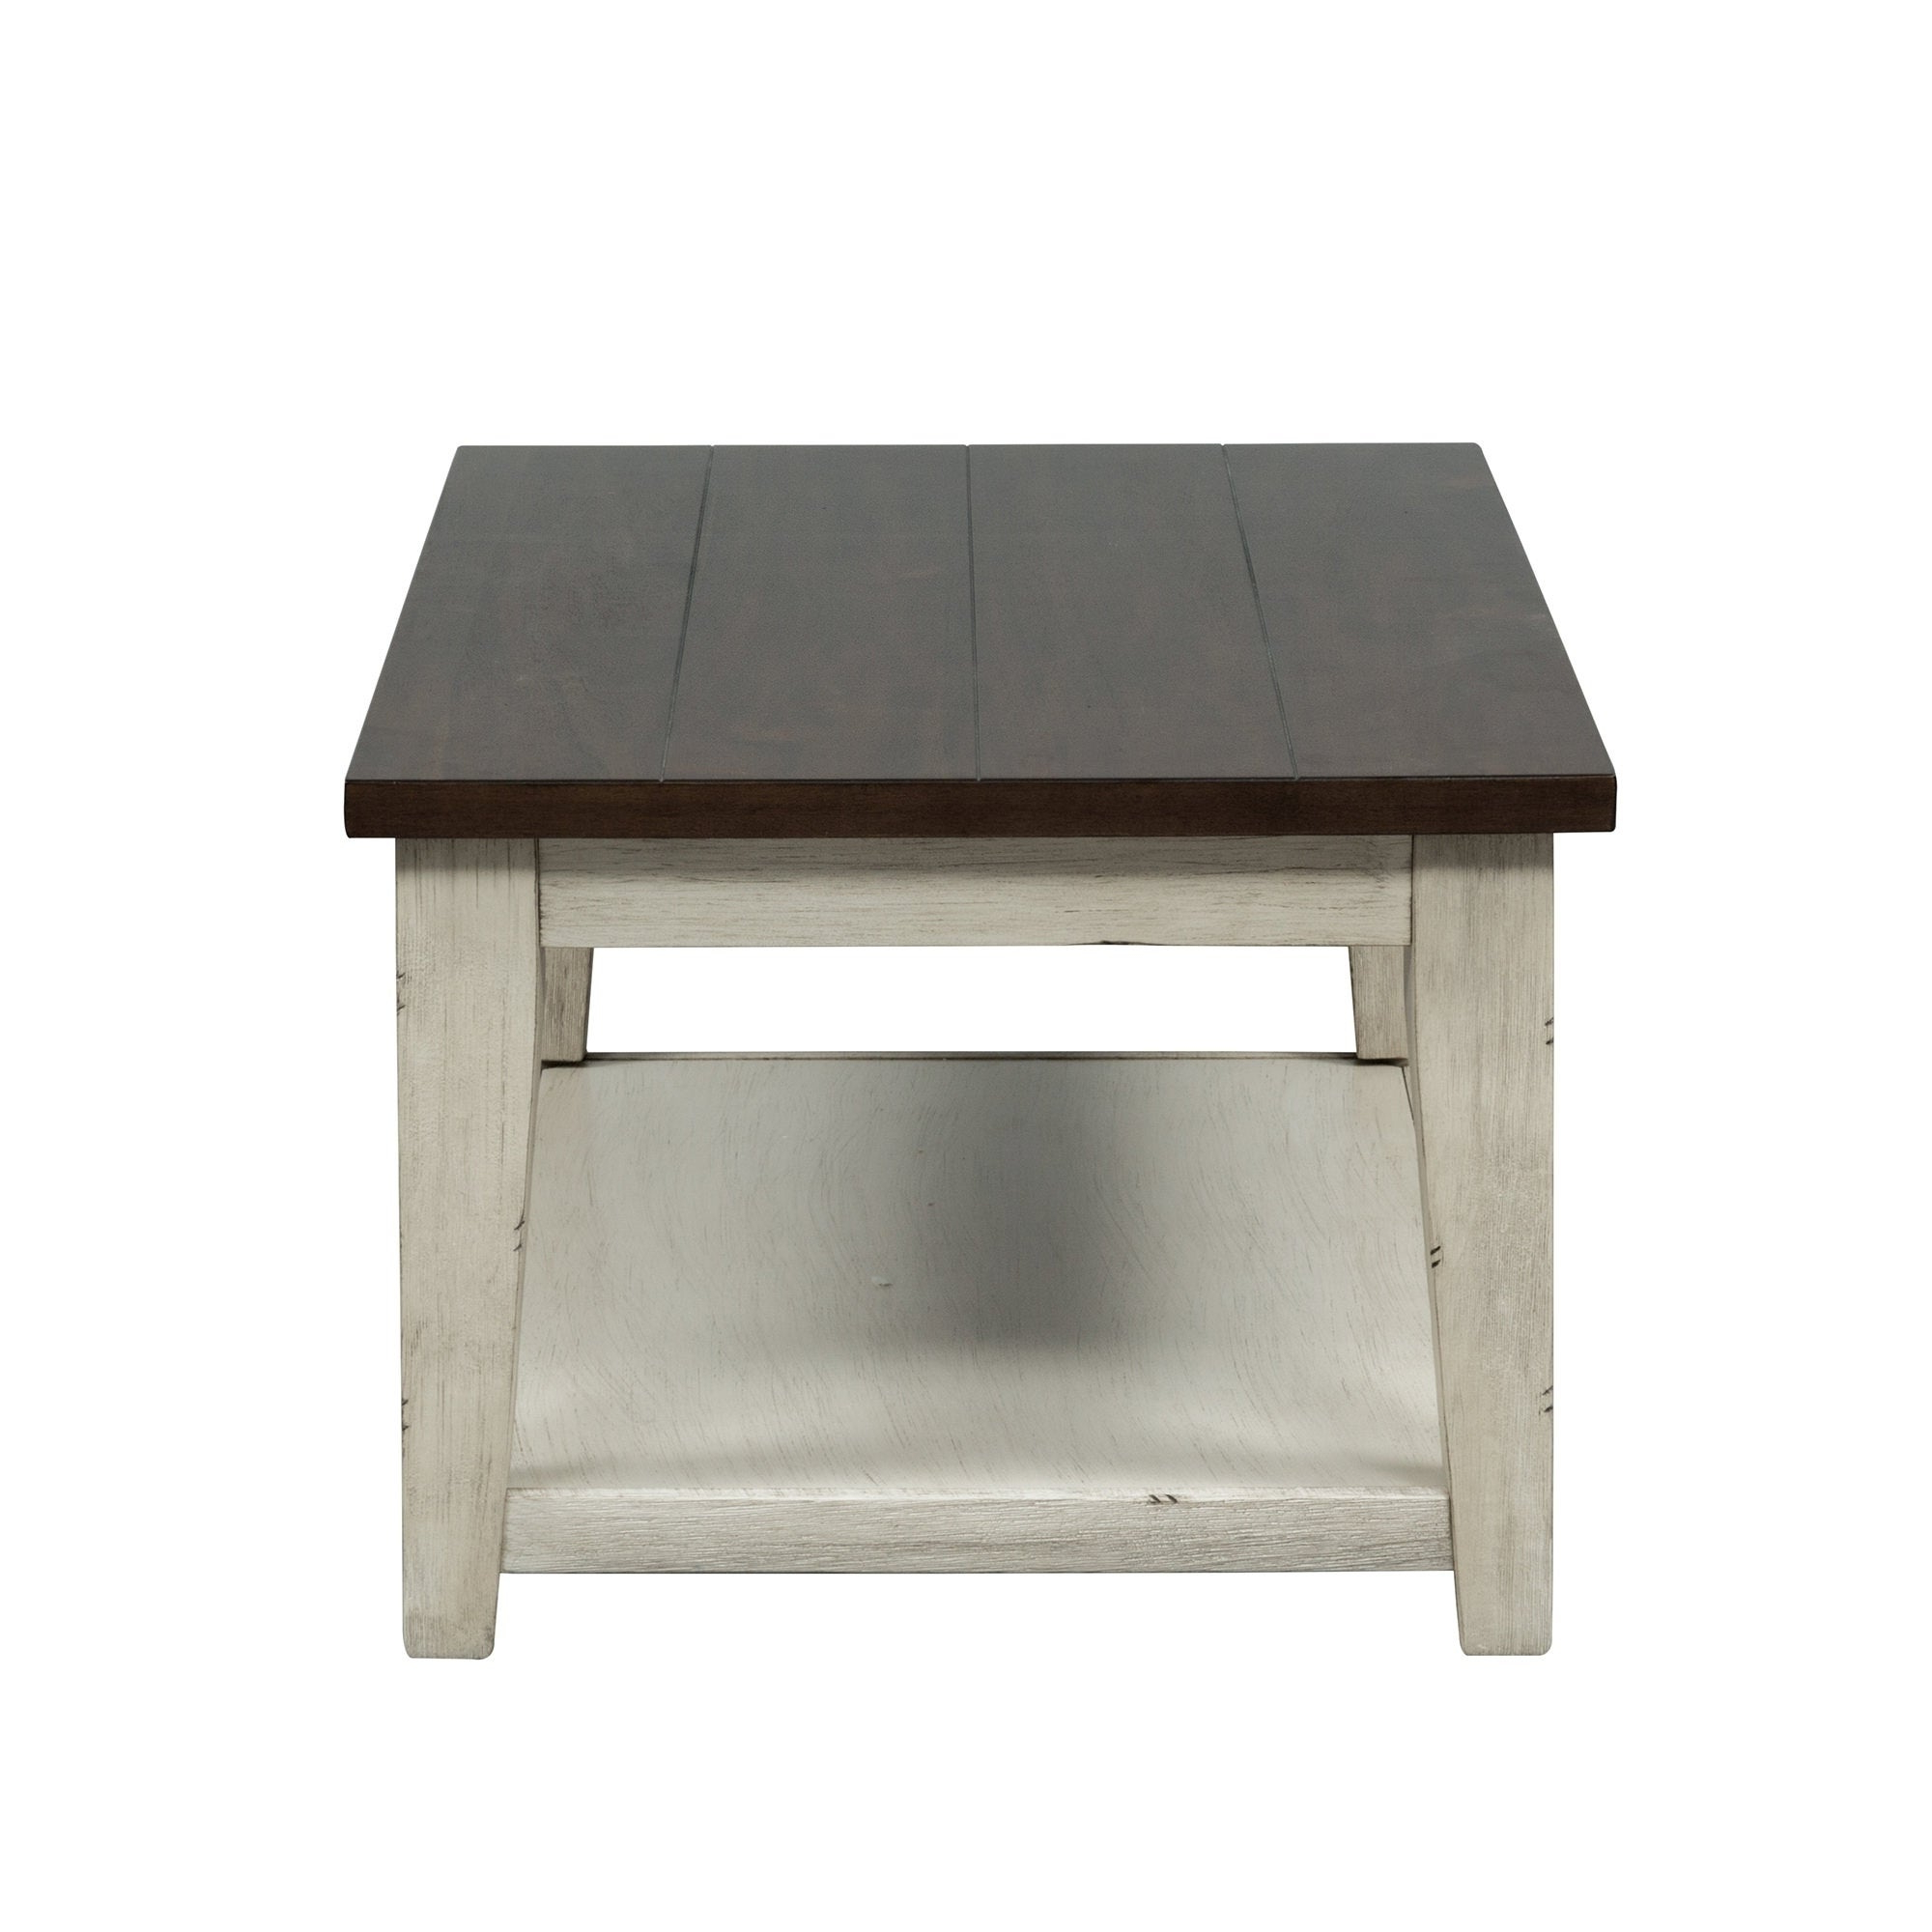 Widely Used The Gray Barn O'quinn Weathered Bark And White Castered Cocktail Tables Regarding The Gray Barn O'quinn Weathered Bark And White Castered Cocktail Table (View 3 of 20)